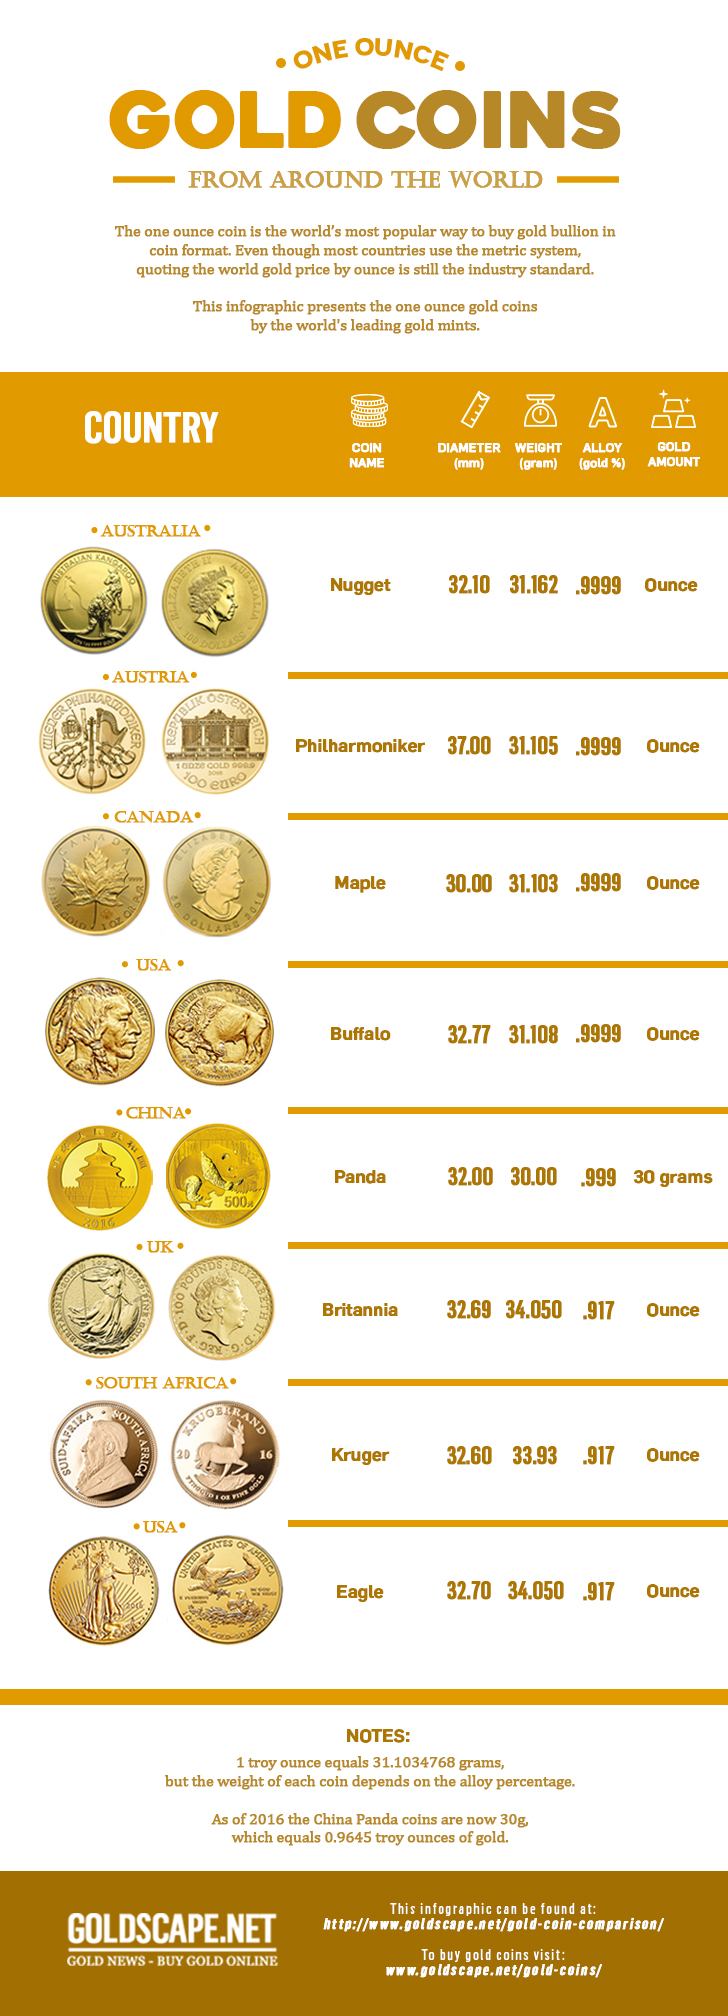 One ounce gold coins from around the world